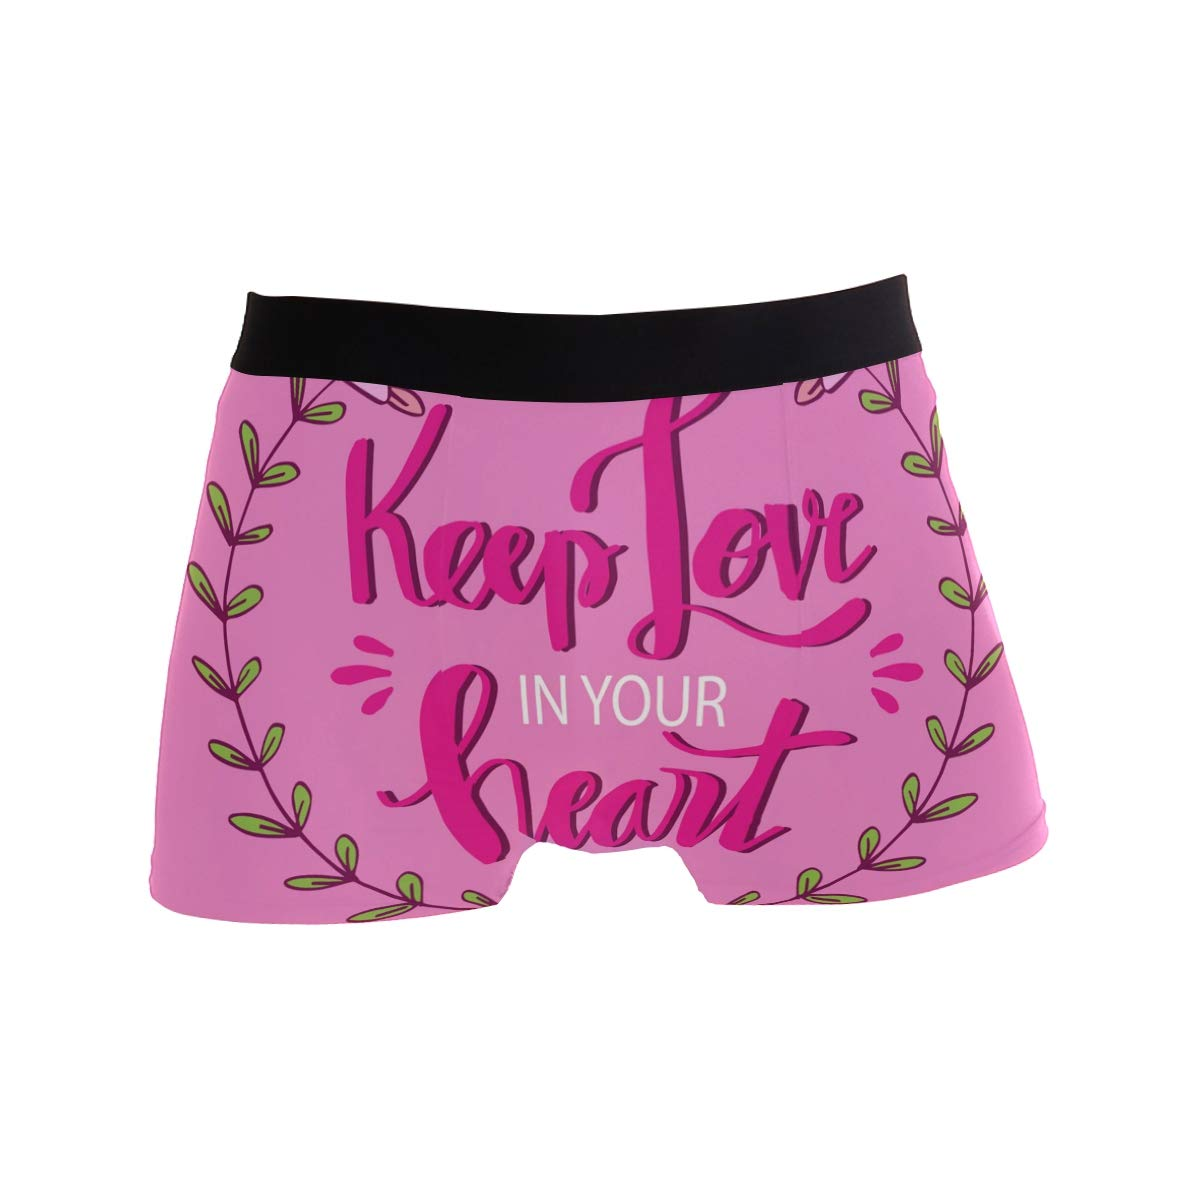 Men Boxer Briefs Polyester Underwear Men 2 Pack Boxer Briefs for Valentines Gift with Keep Love in Your Heart Pattern